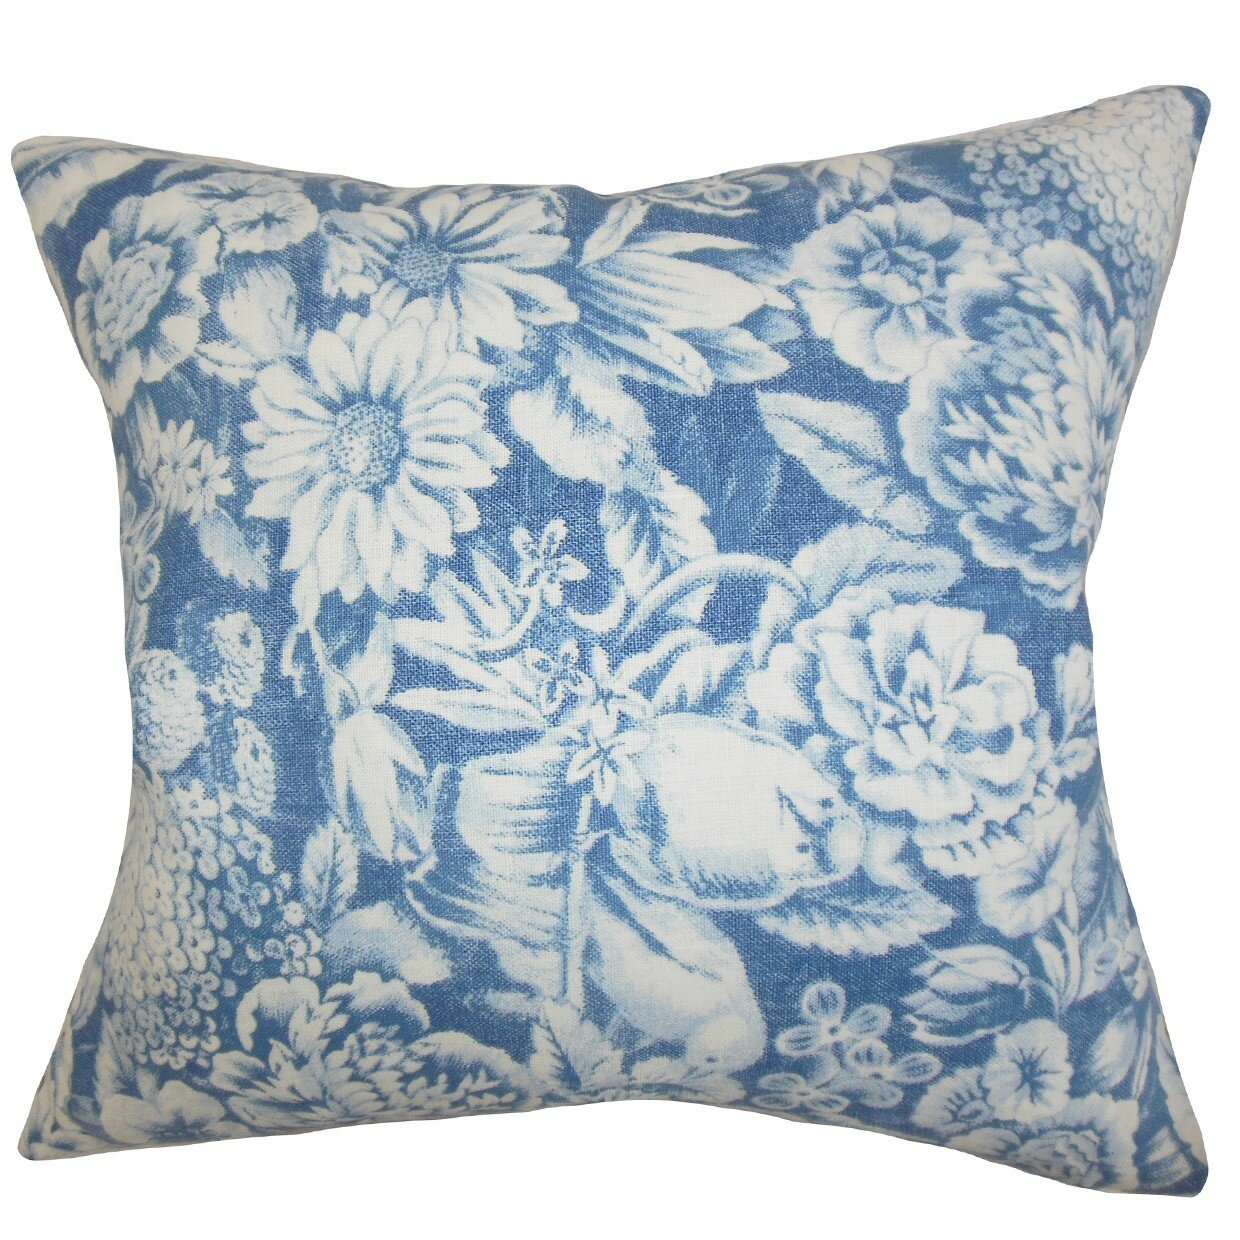 The Pillow Collection Elspeth Floral Linen Throw Pillow & Reviews Wayfair